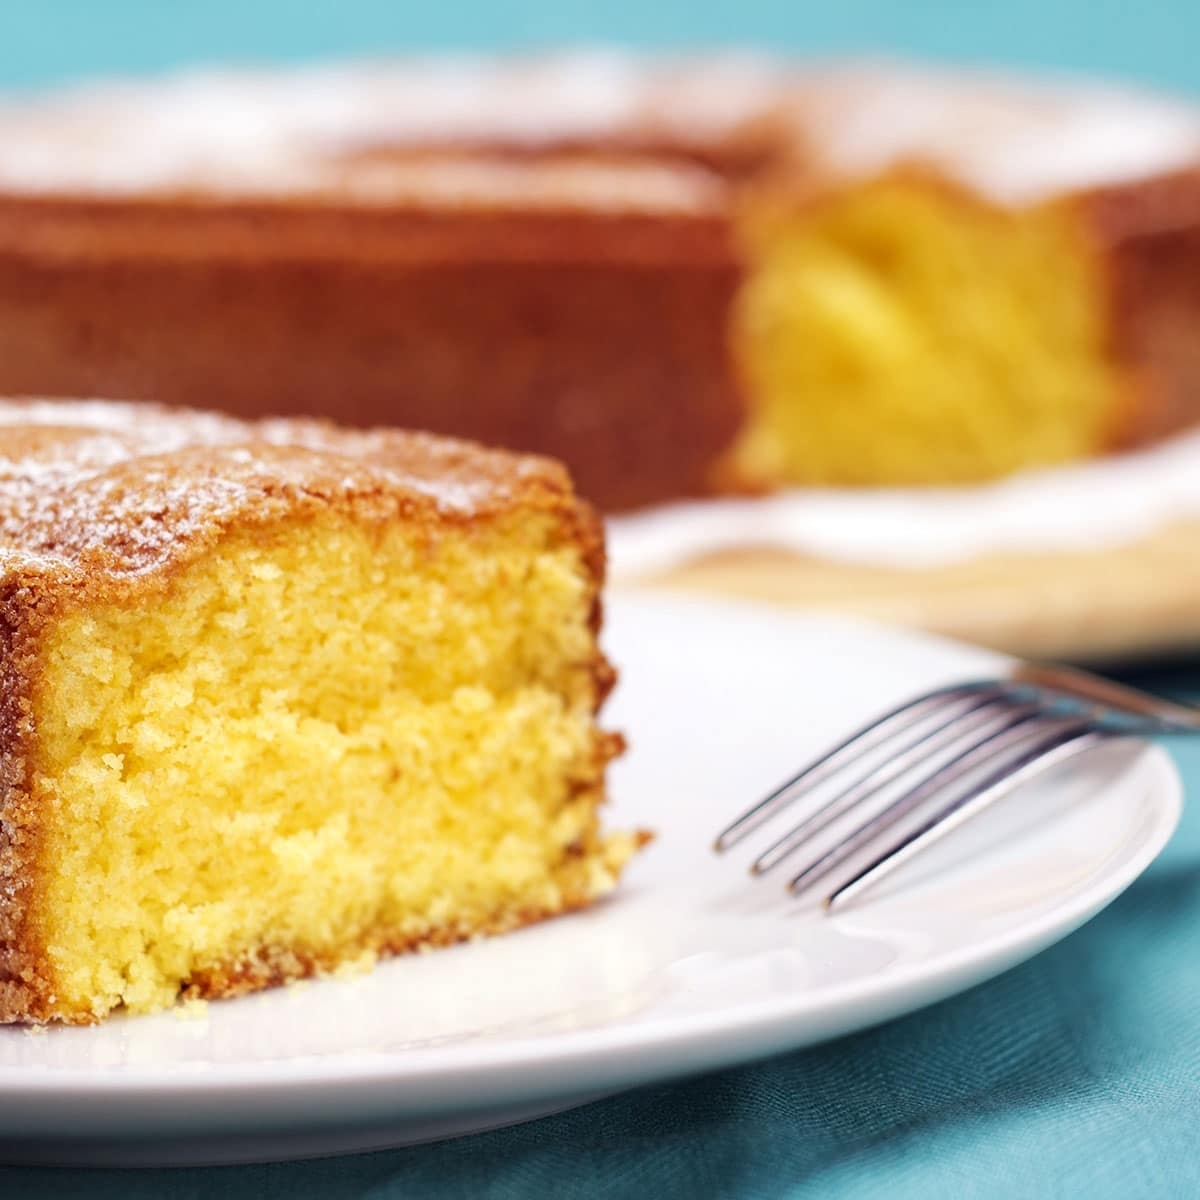 National Sponge Cake Day - August 23, 2019 | National Today intended for Images National Day August 23